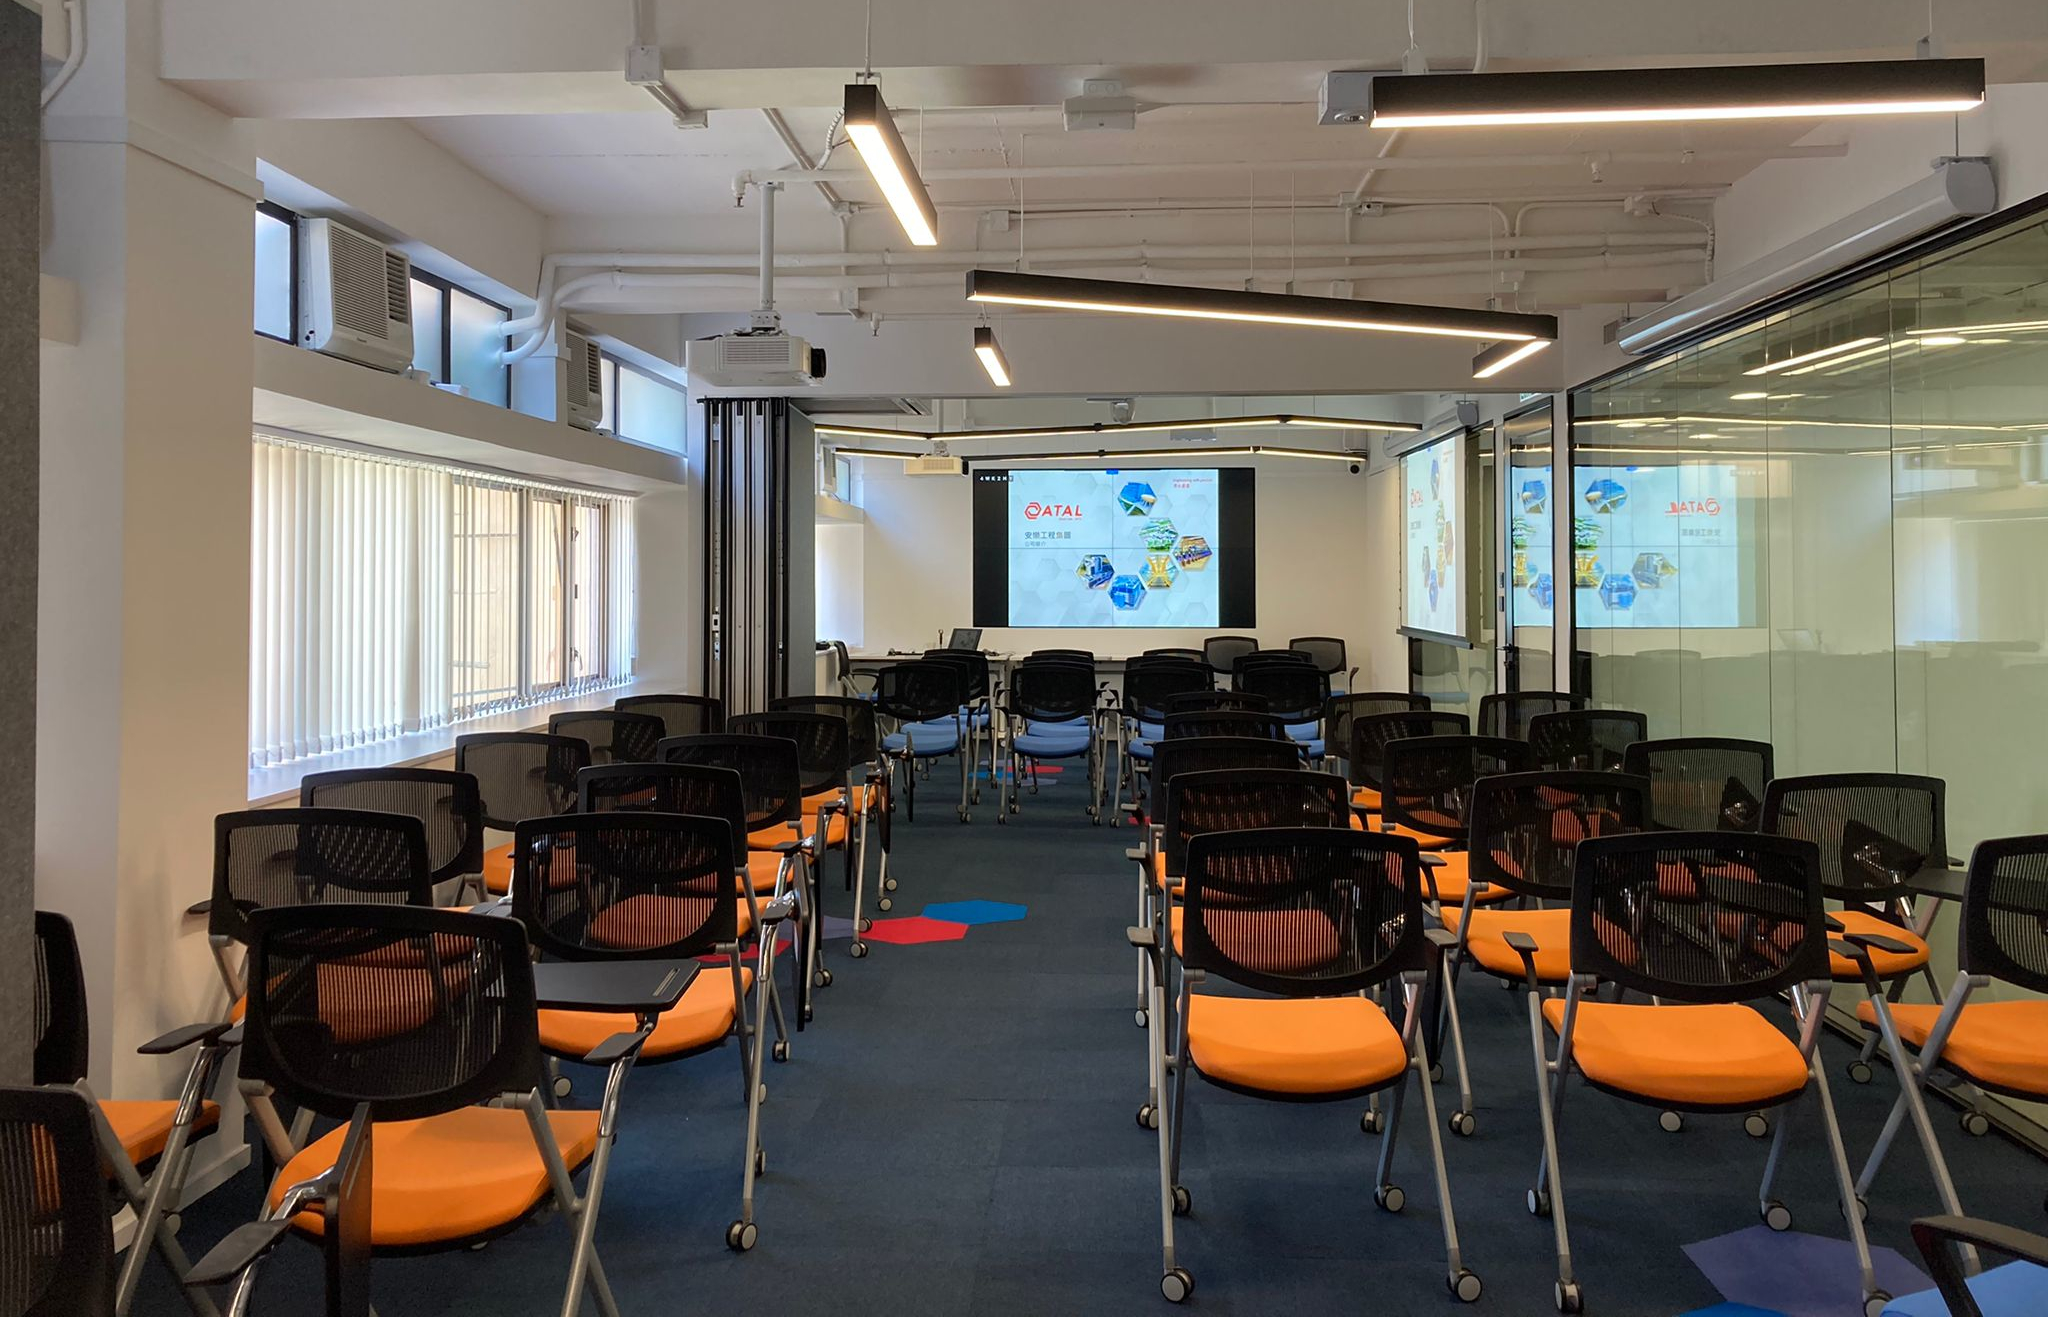 ATC is equipped with facilities including classrooms, a library and multi-purpose meeting rooms, to provide colleagues with a comfortable and practical environment for training.